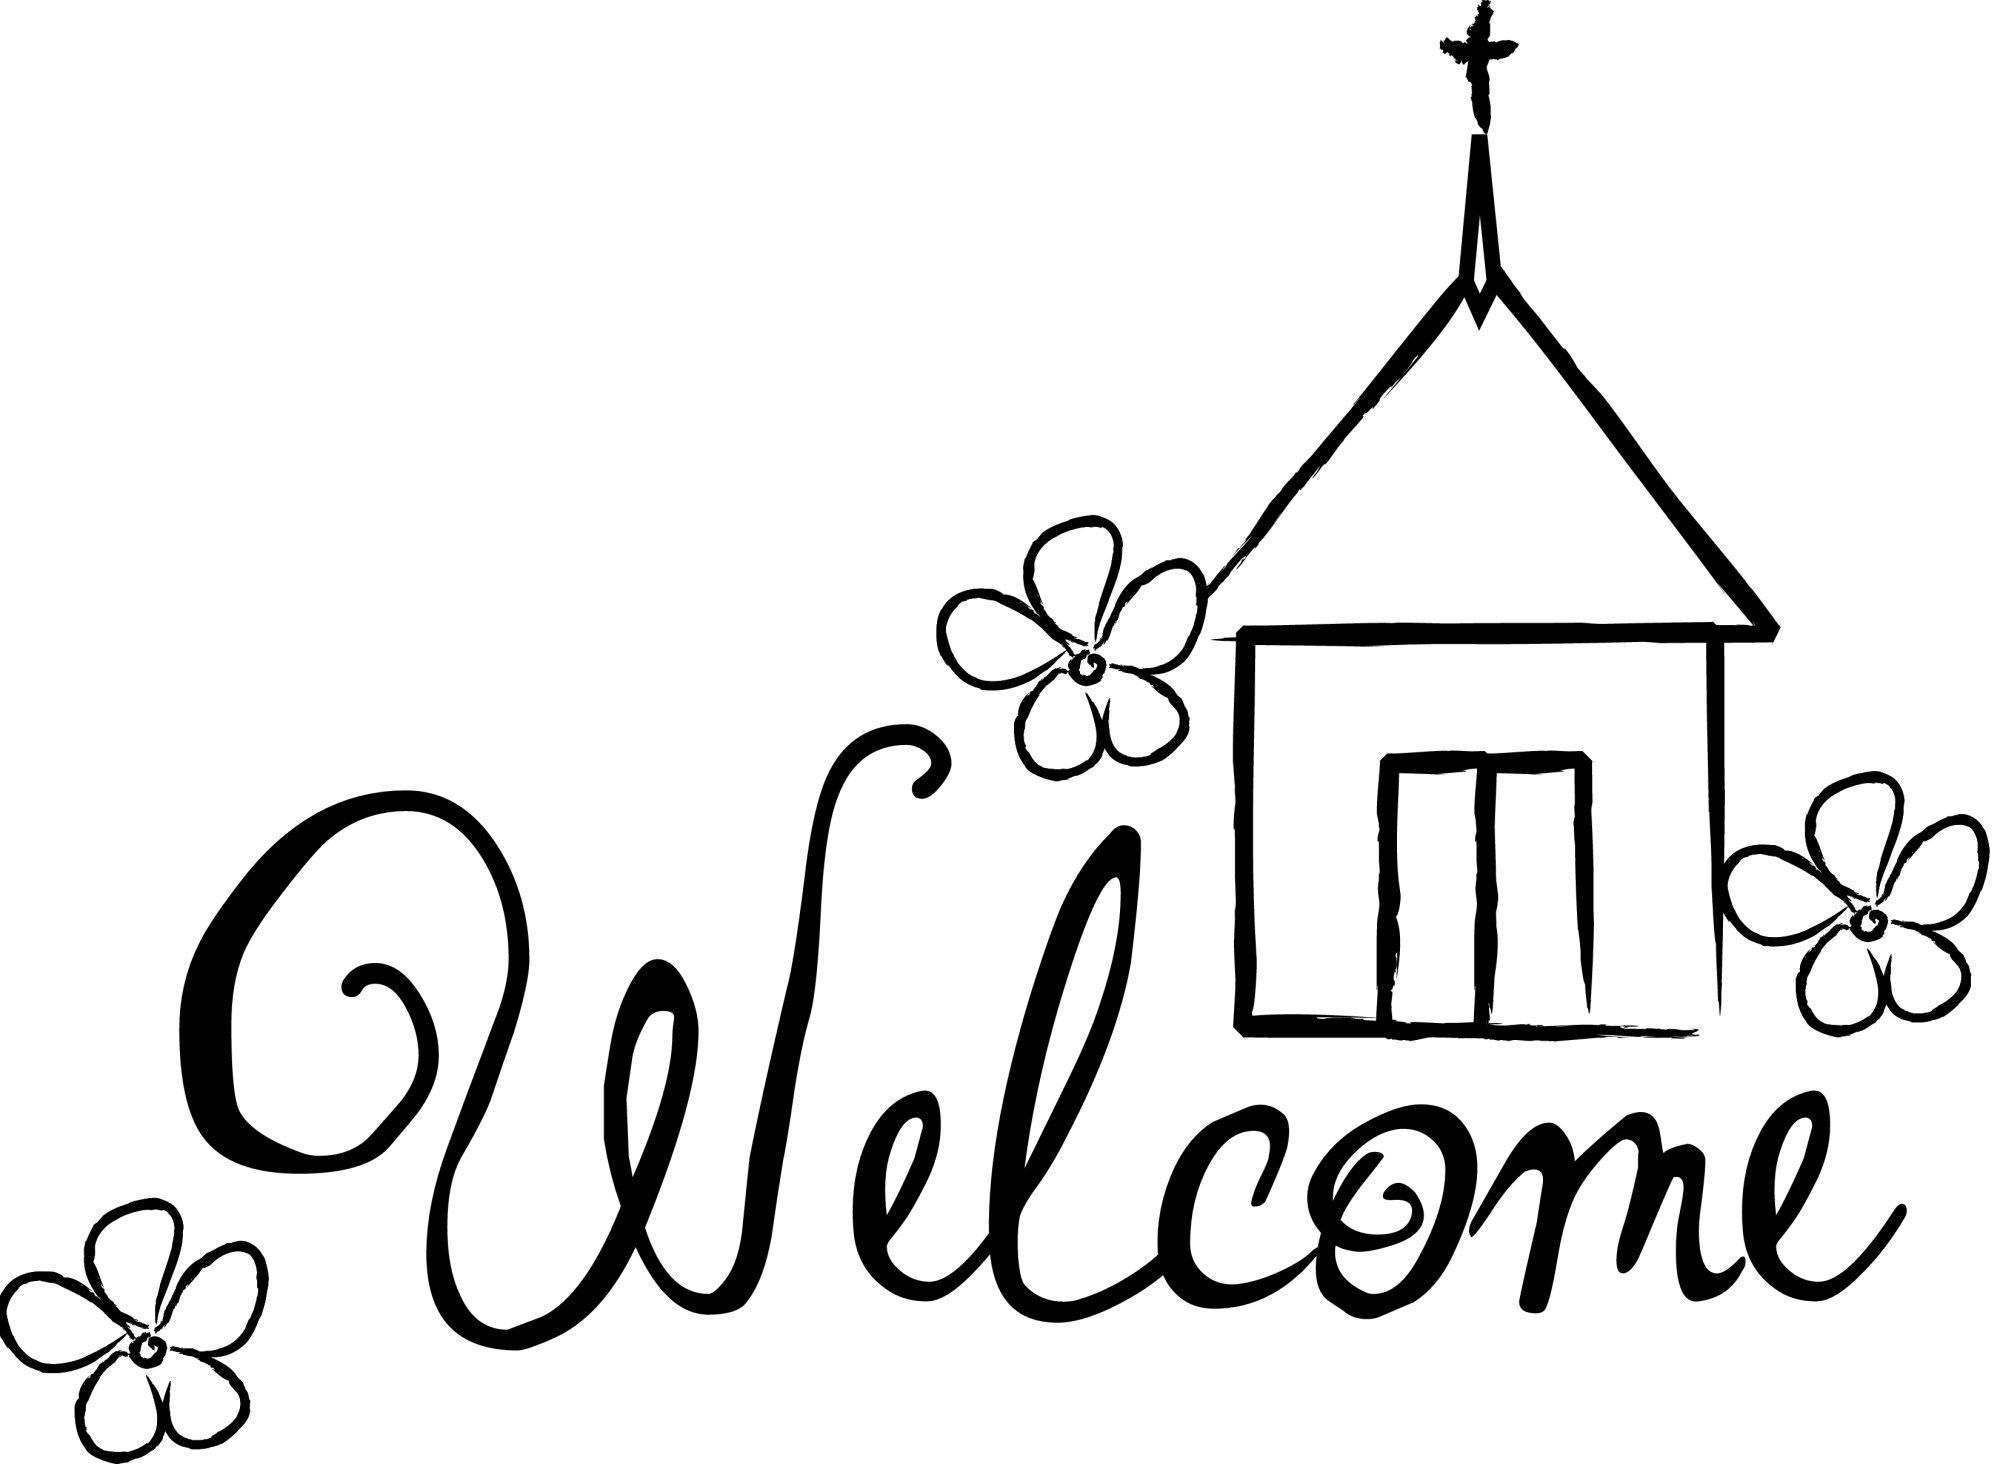 hight resolution of 3300x2417 church welcome cliparts free download clip art